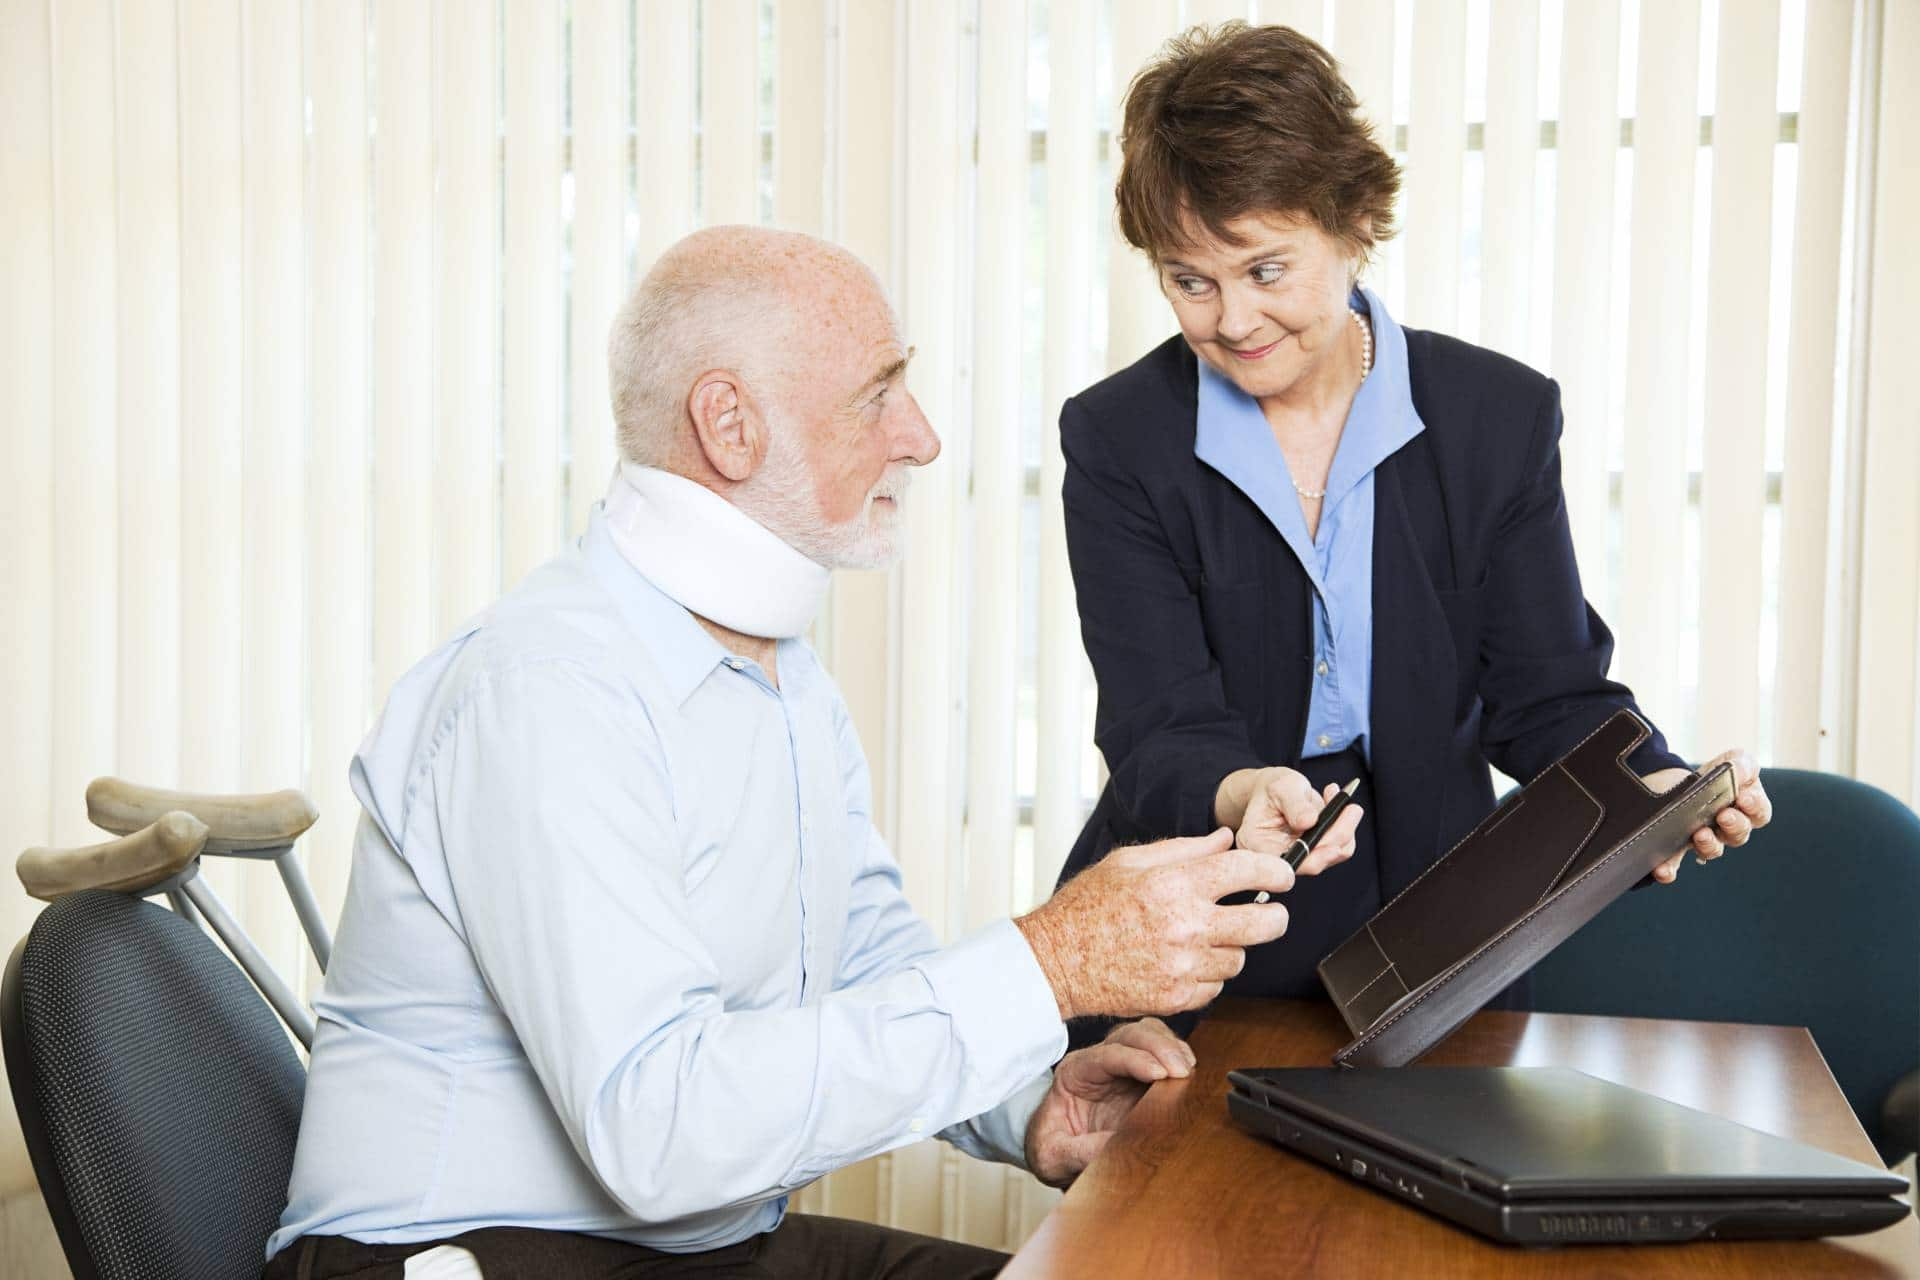 Schedule a free consultation with our personal injury lawyers at the Angell Law Firm in West Paces Ferry.